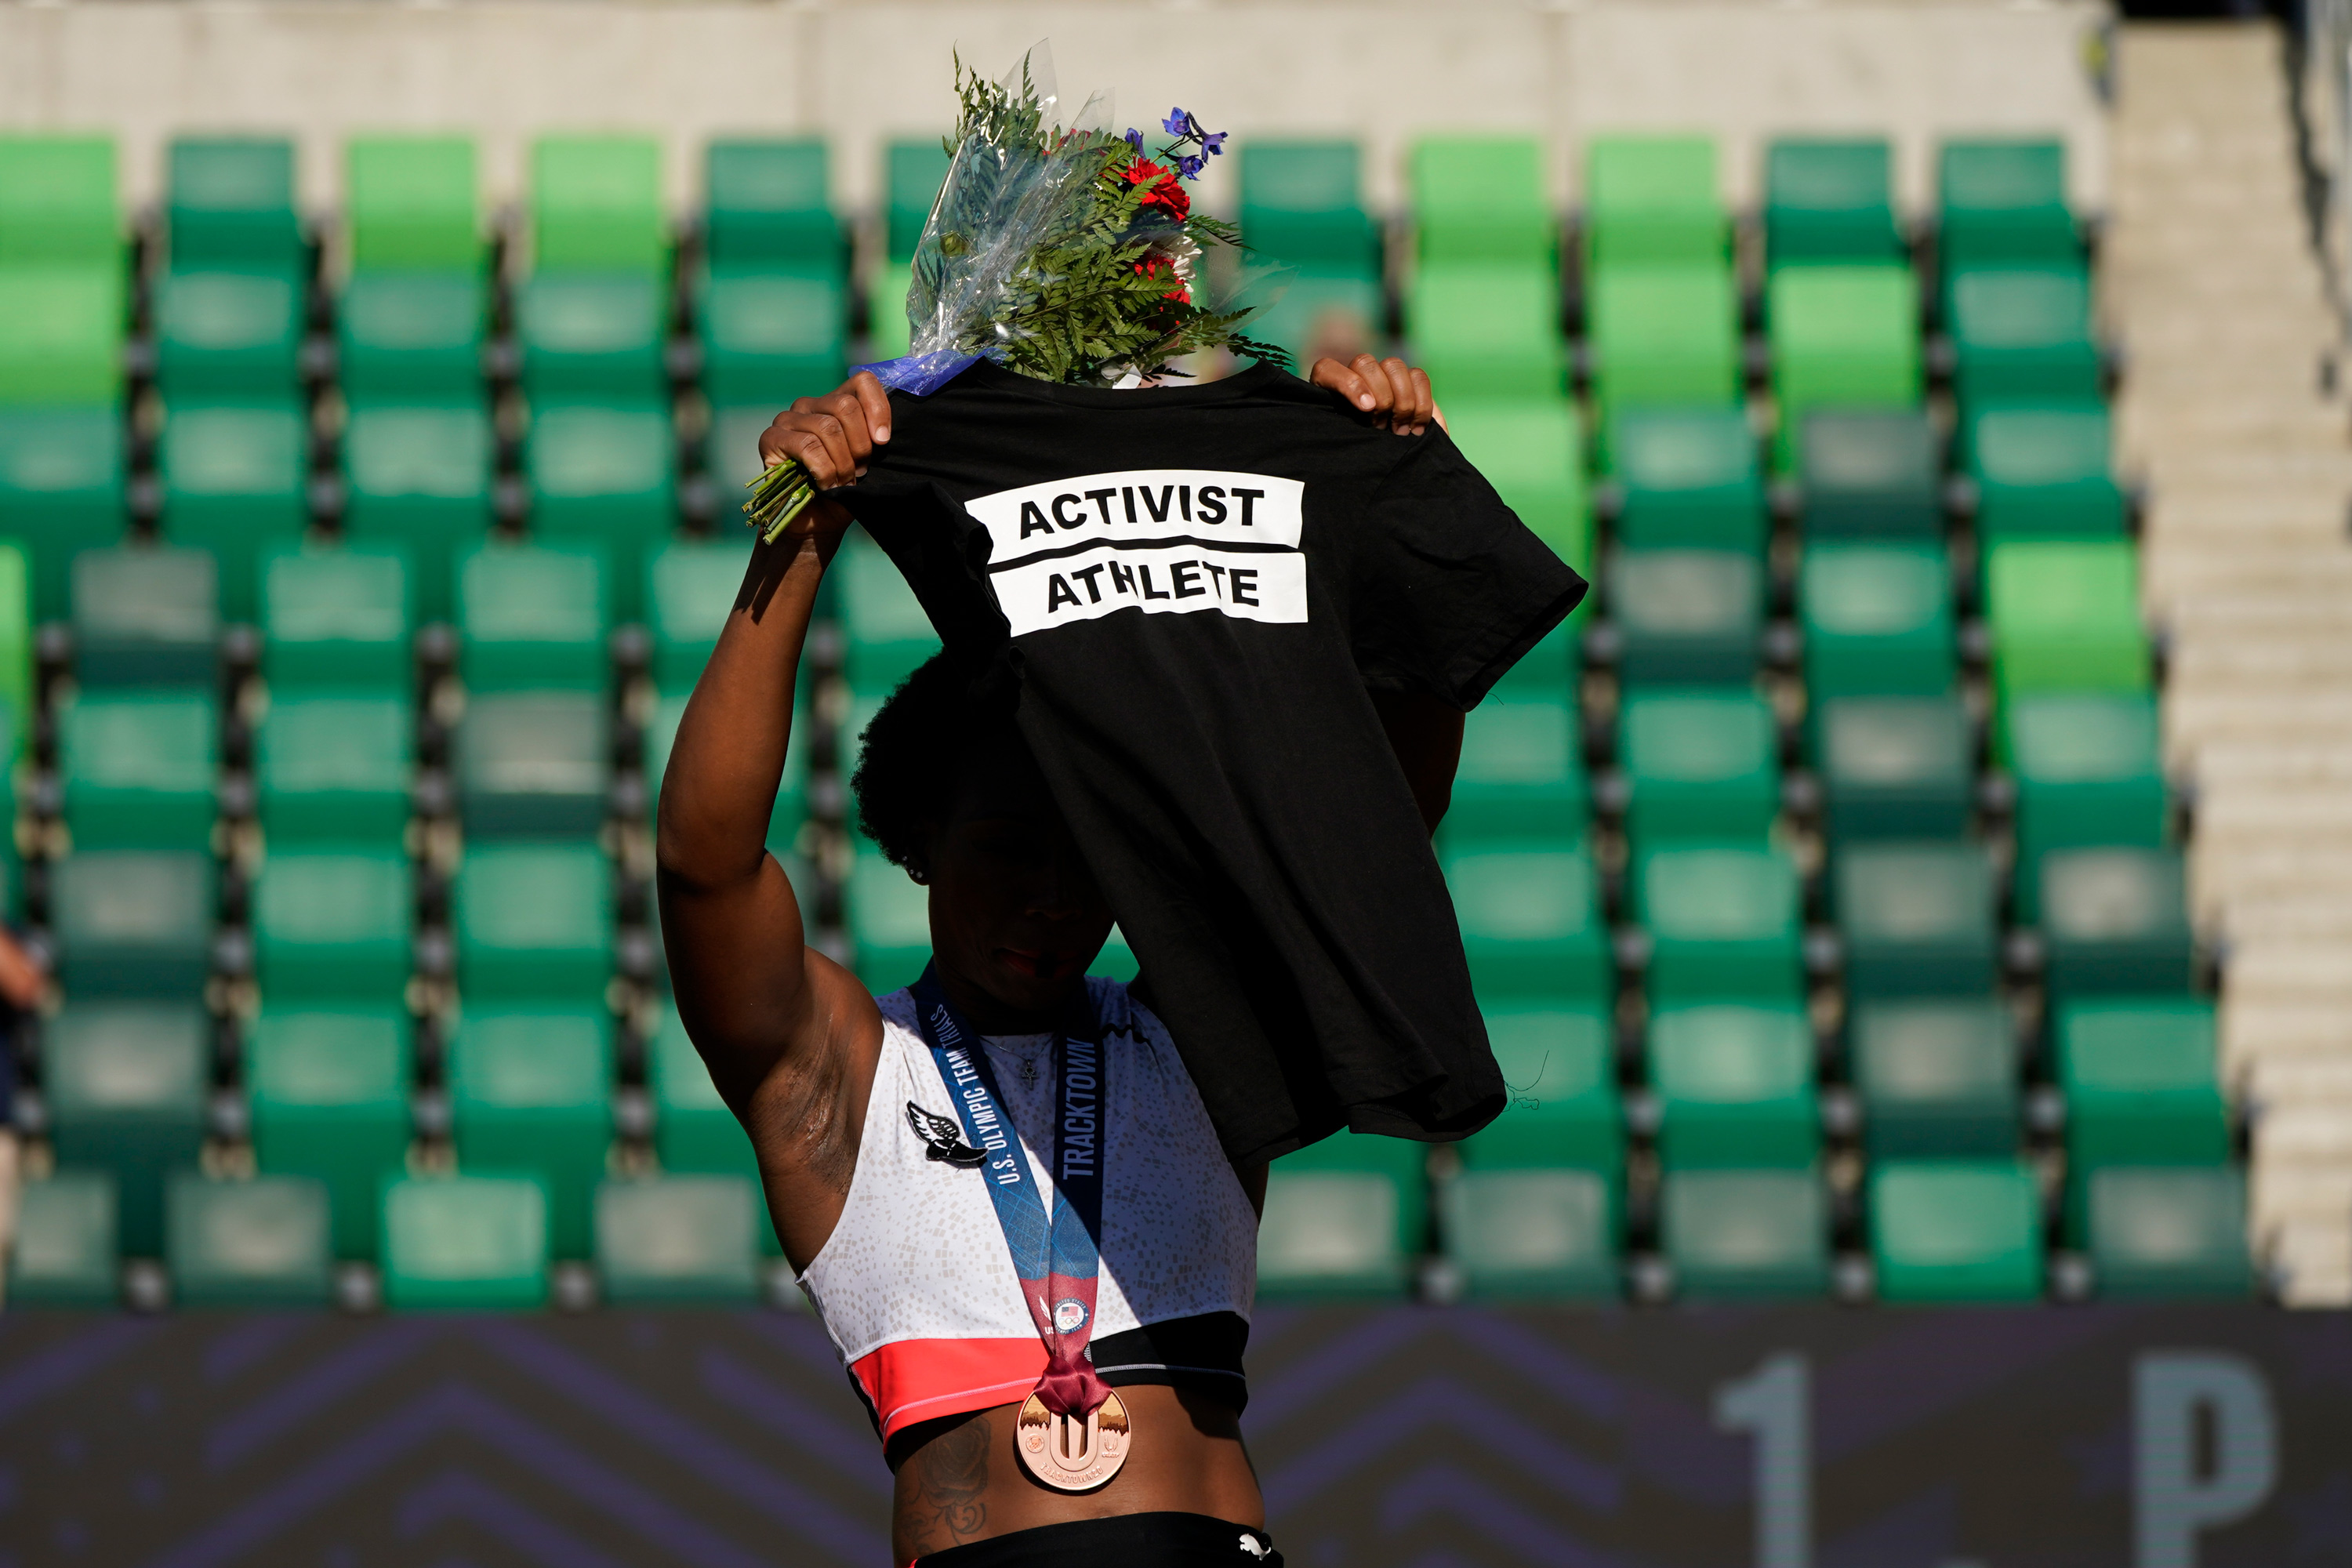 'I never said that I hated the country,' says US hammer thrower Gwen Berry after turning from the flag